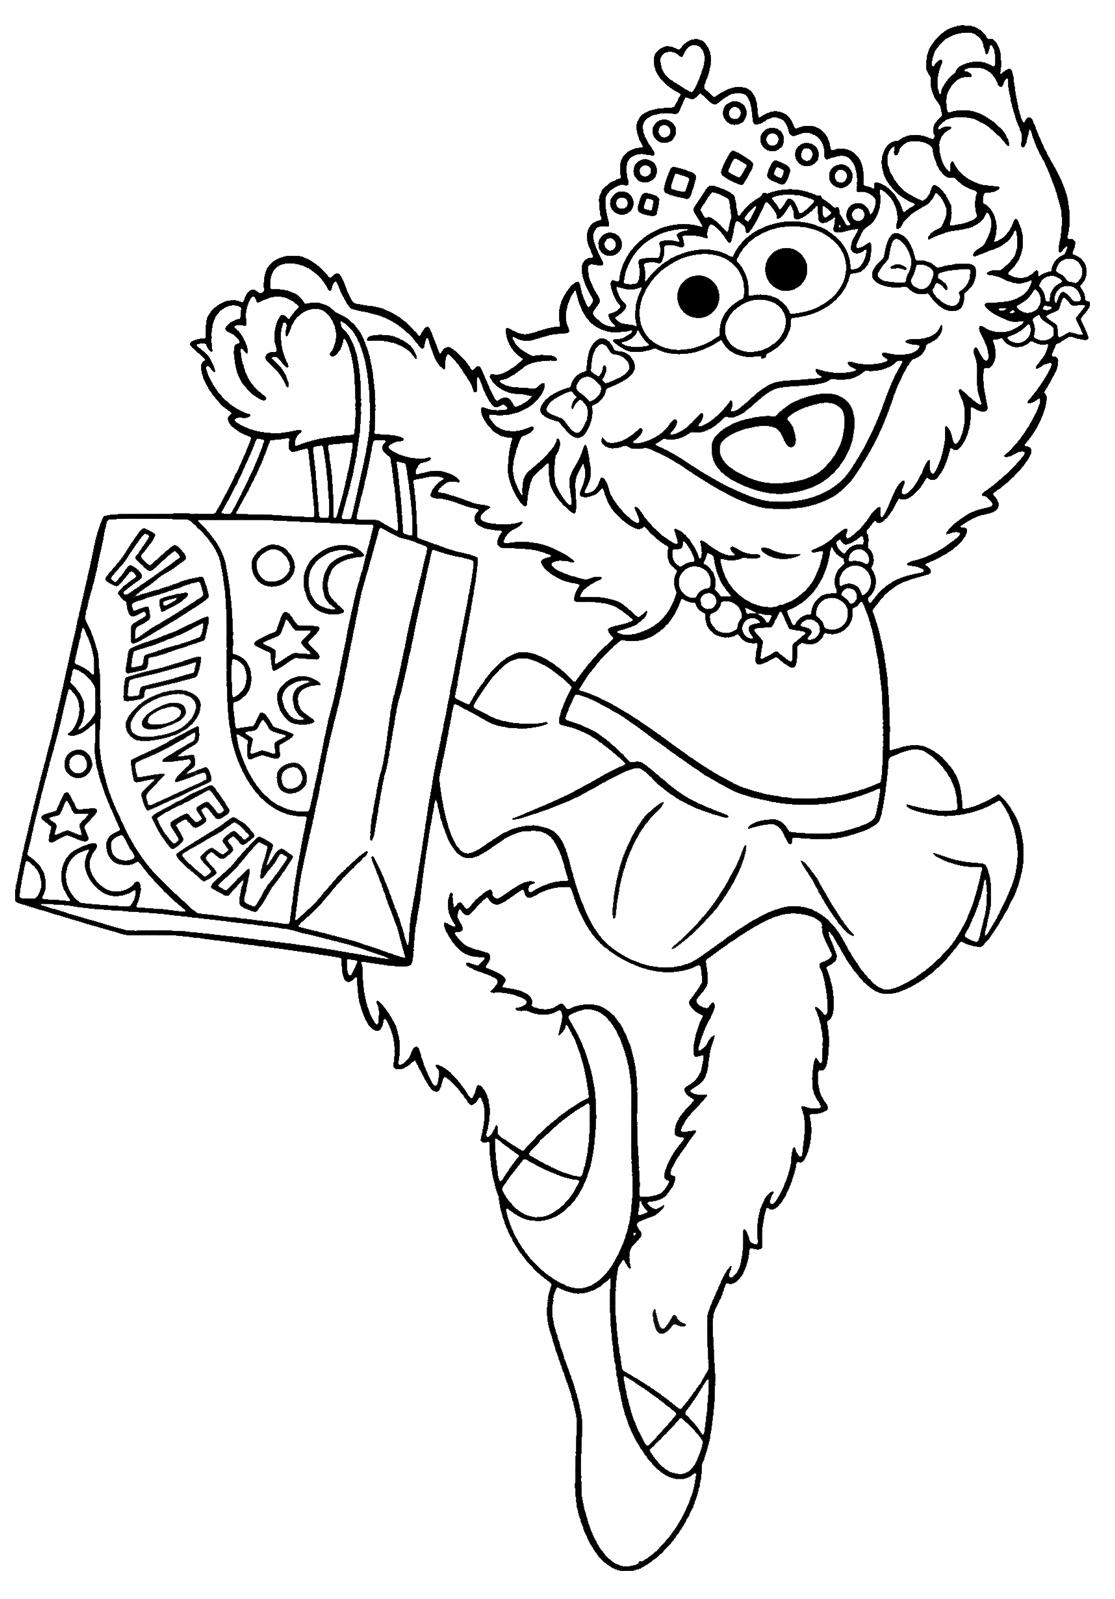 sesame street holiday coloring pages - photo#26